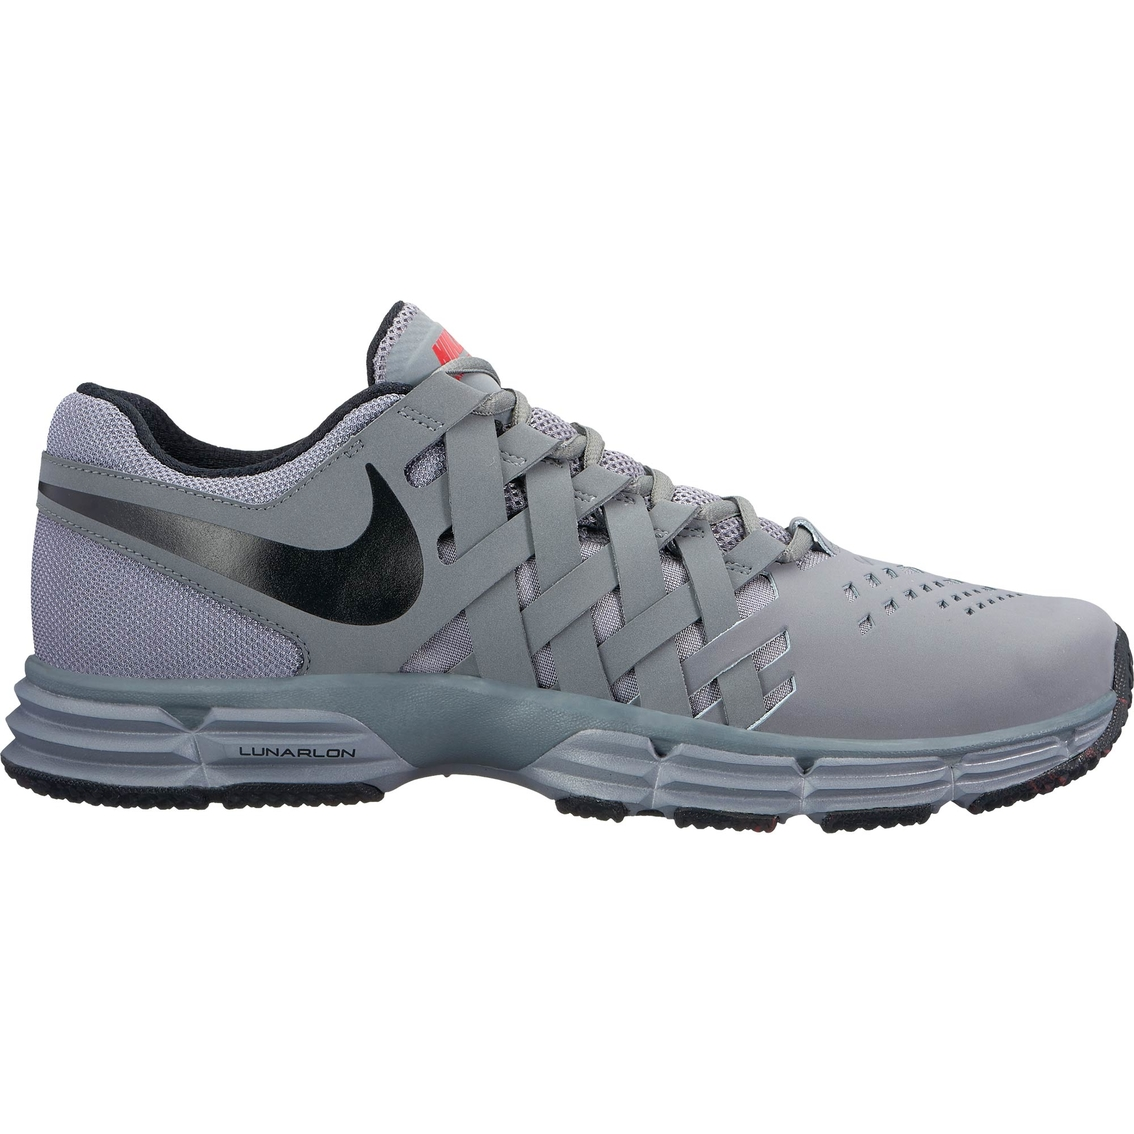 6fad16e26e9d Nike Men s Lunar Fingertrap Training Shoes